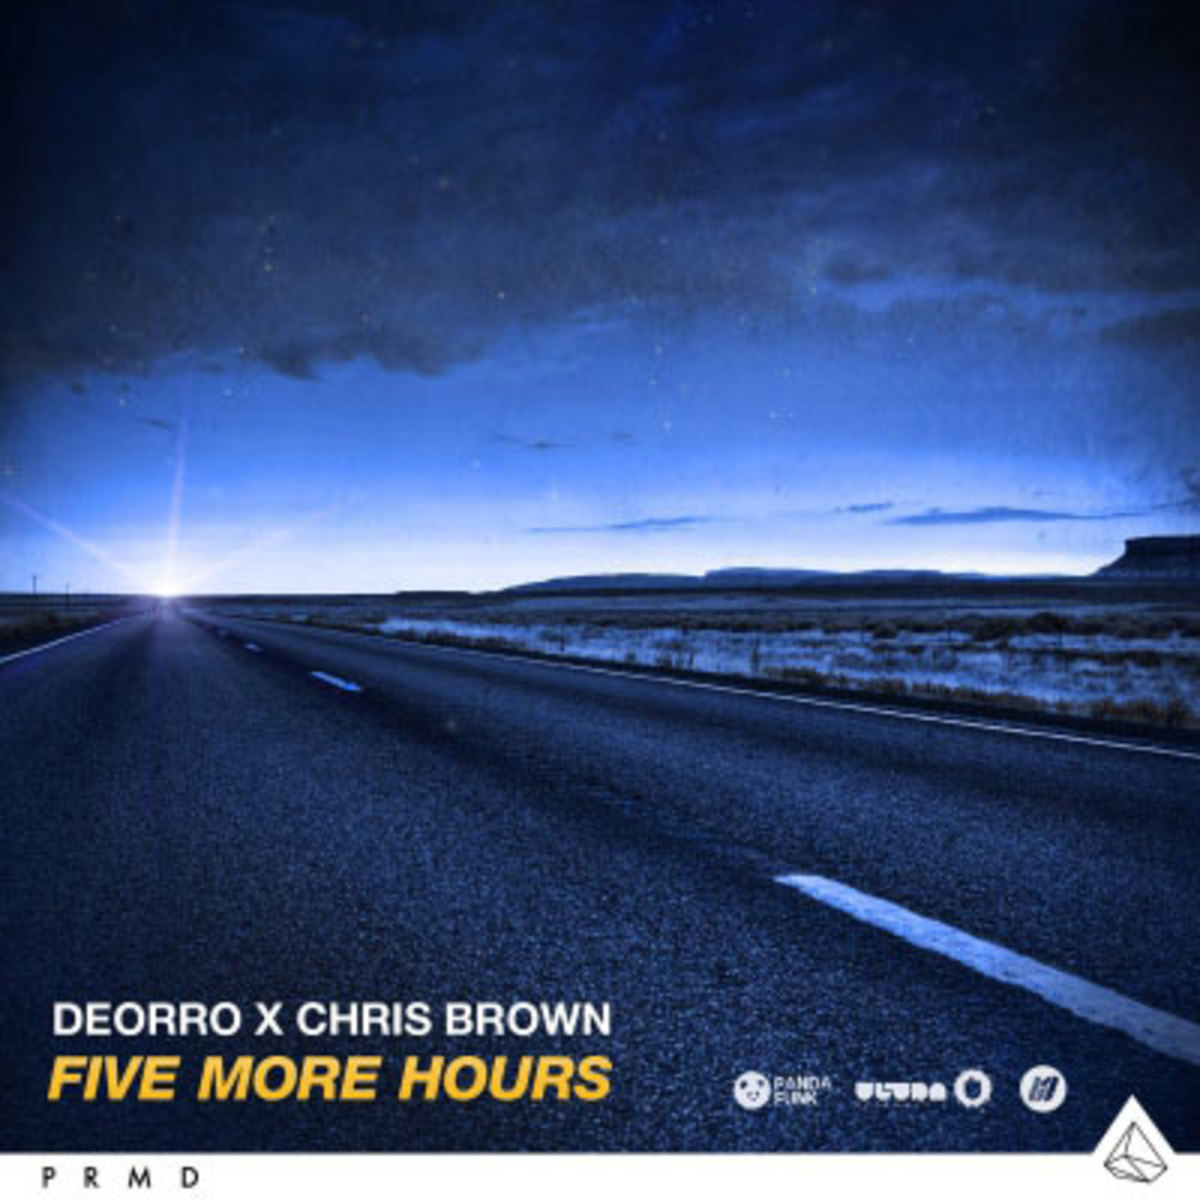 deorro-chris-brown-five-more-hours.jpg